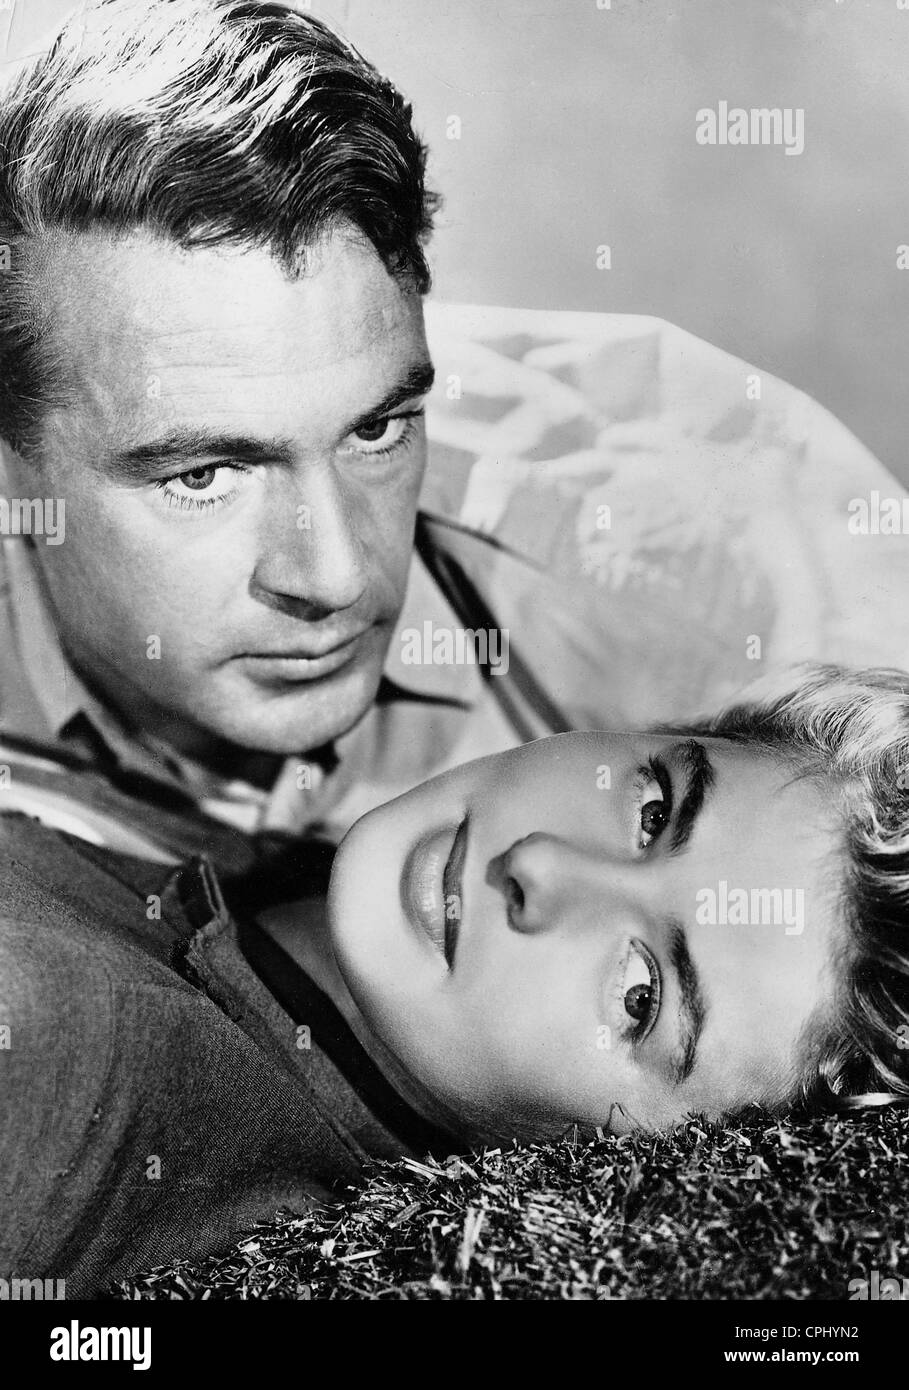 Gary Cooper and Ingrid Bergman in 'For Whom the Bell Tolls' in, 1943 - Stock Image